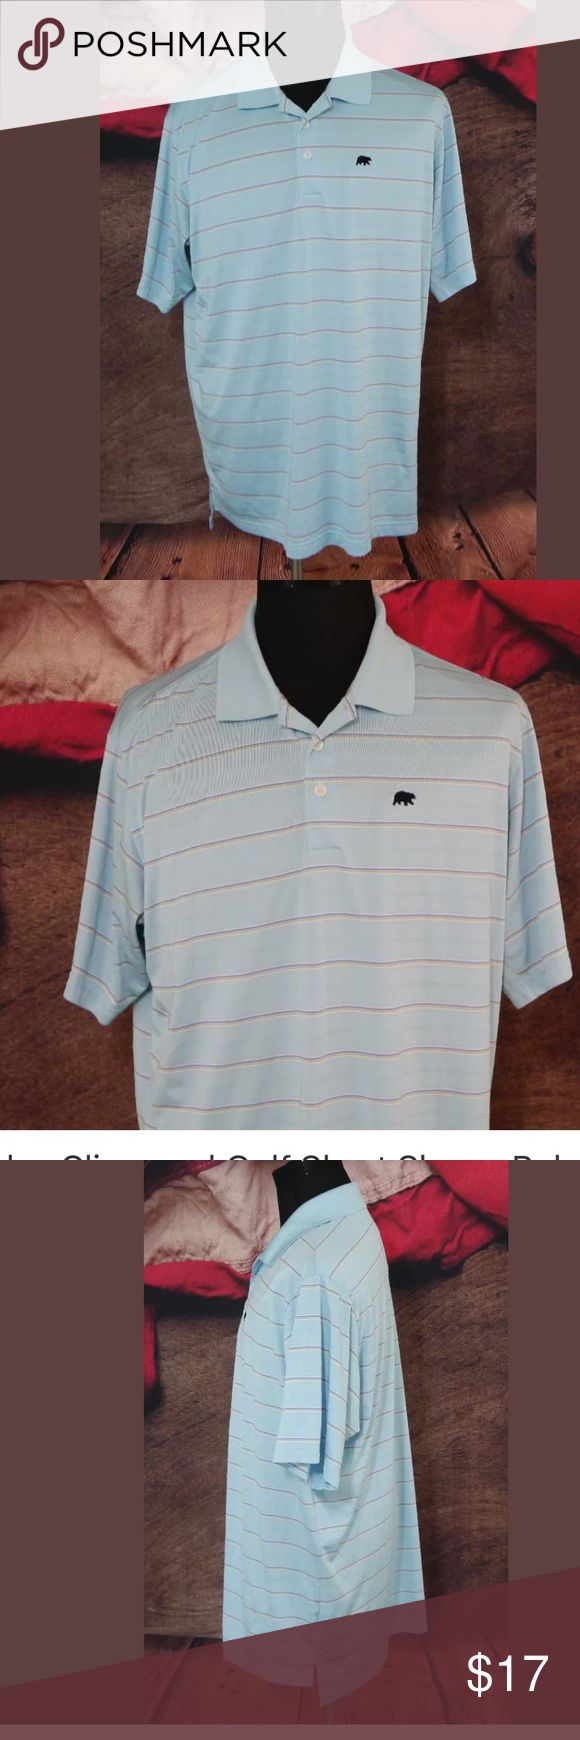 """Adidas Climacool Golf Polo Shirt Blue Striped XL Pre-Owned in Excellent Condition Adidas Climacool Golf Short Sleeve Polo Shirt Blue Striped Mens XL EUC  Size: XL  Material: 100% Polyester  Color: Blue Stripped with Yellow and White  Measurements: Chest: 24"""" / Sleeve: 11"""" / Shoulders: 20"""" / Length: 32"""" adidas Shirts Polos"""